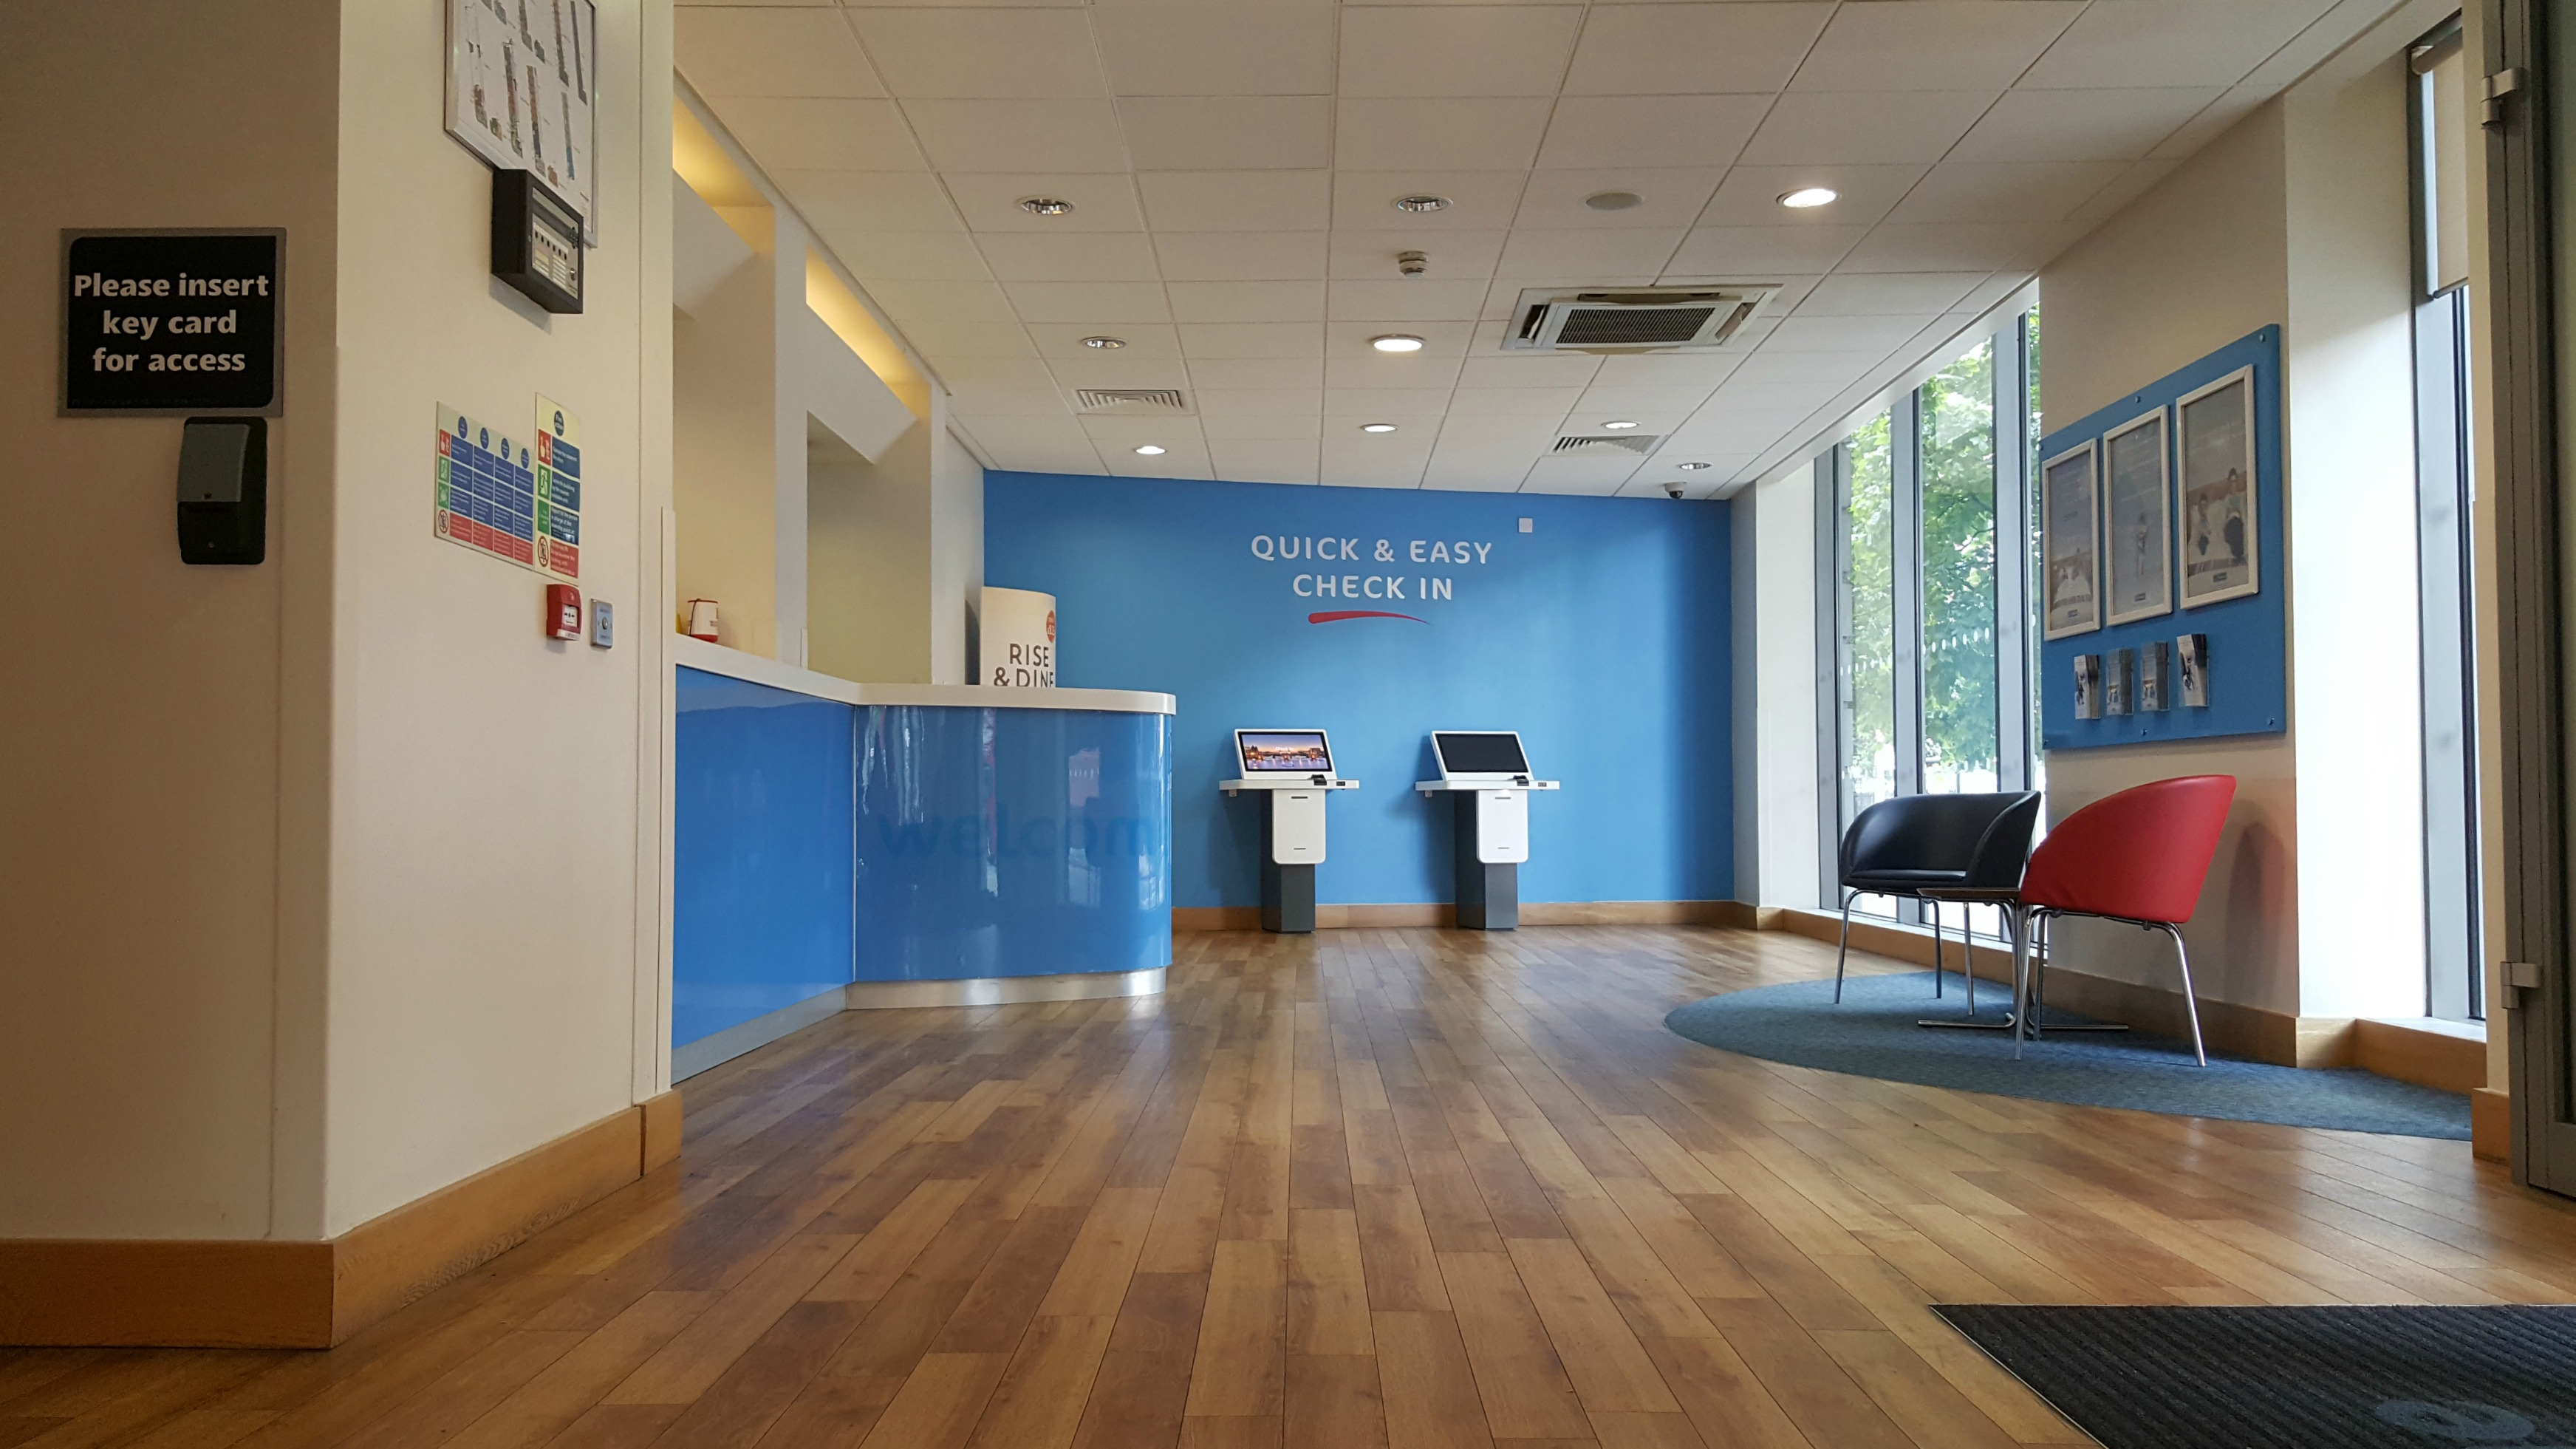 Travelodge Waterloo London reception